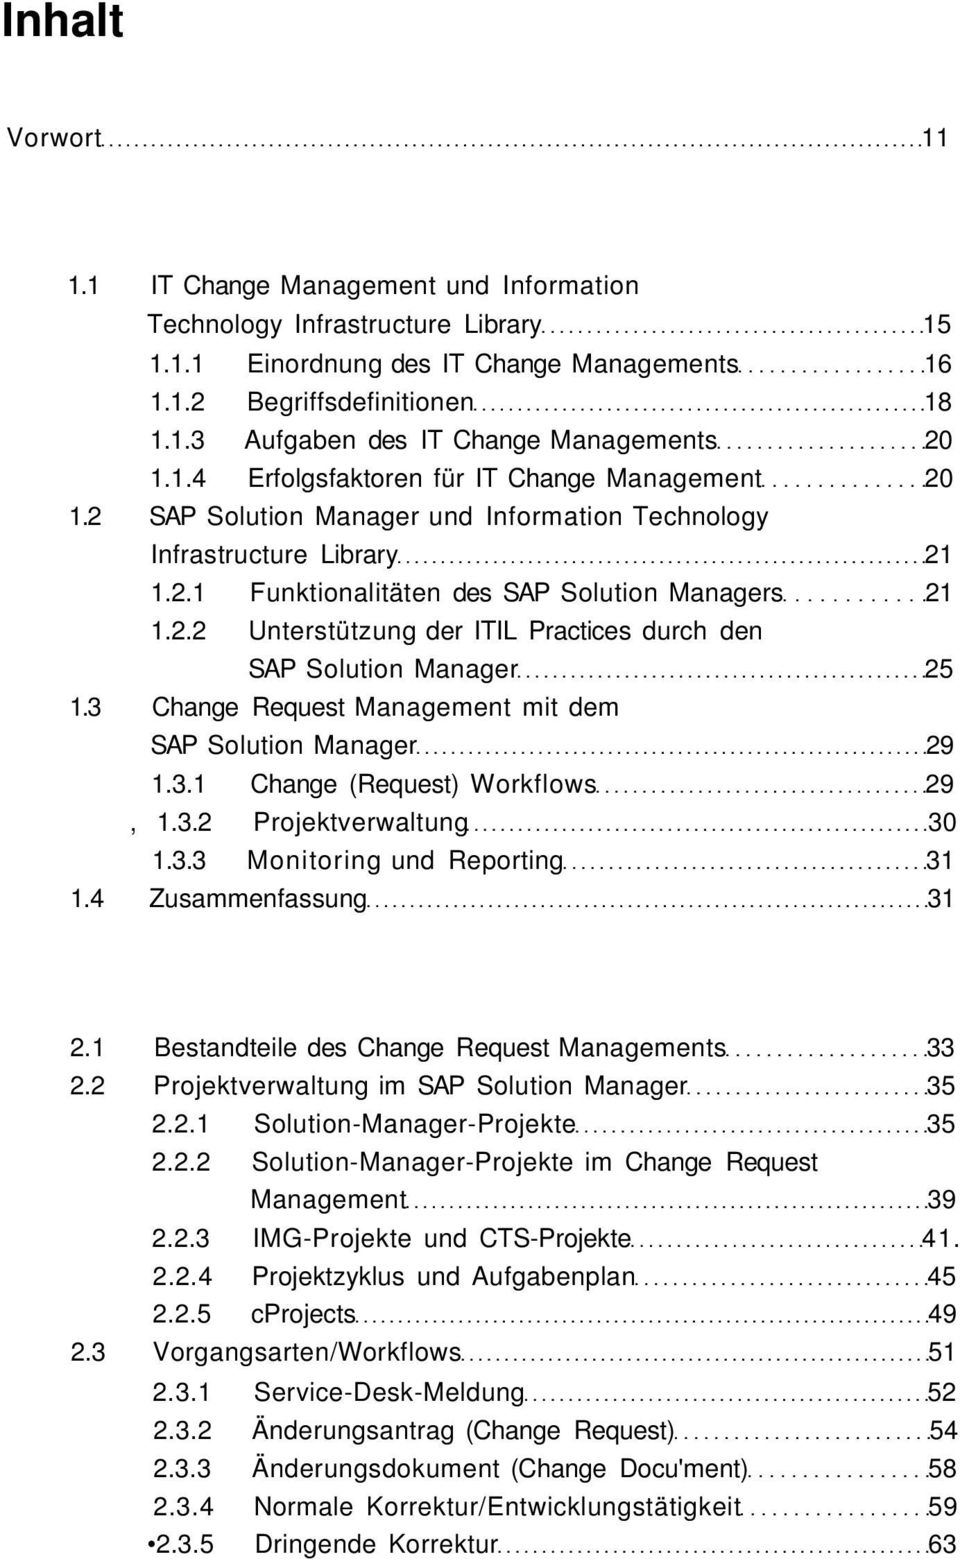 3 Change Request Management mit dem SAP Solution Manager 29 1.3.1 Change (Request) Workflows 29, 1.3.2 Projektverwaltung 30 1.3.3 Monitoring und Reporting 31 1.4 Zusammenfassung 31 2.